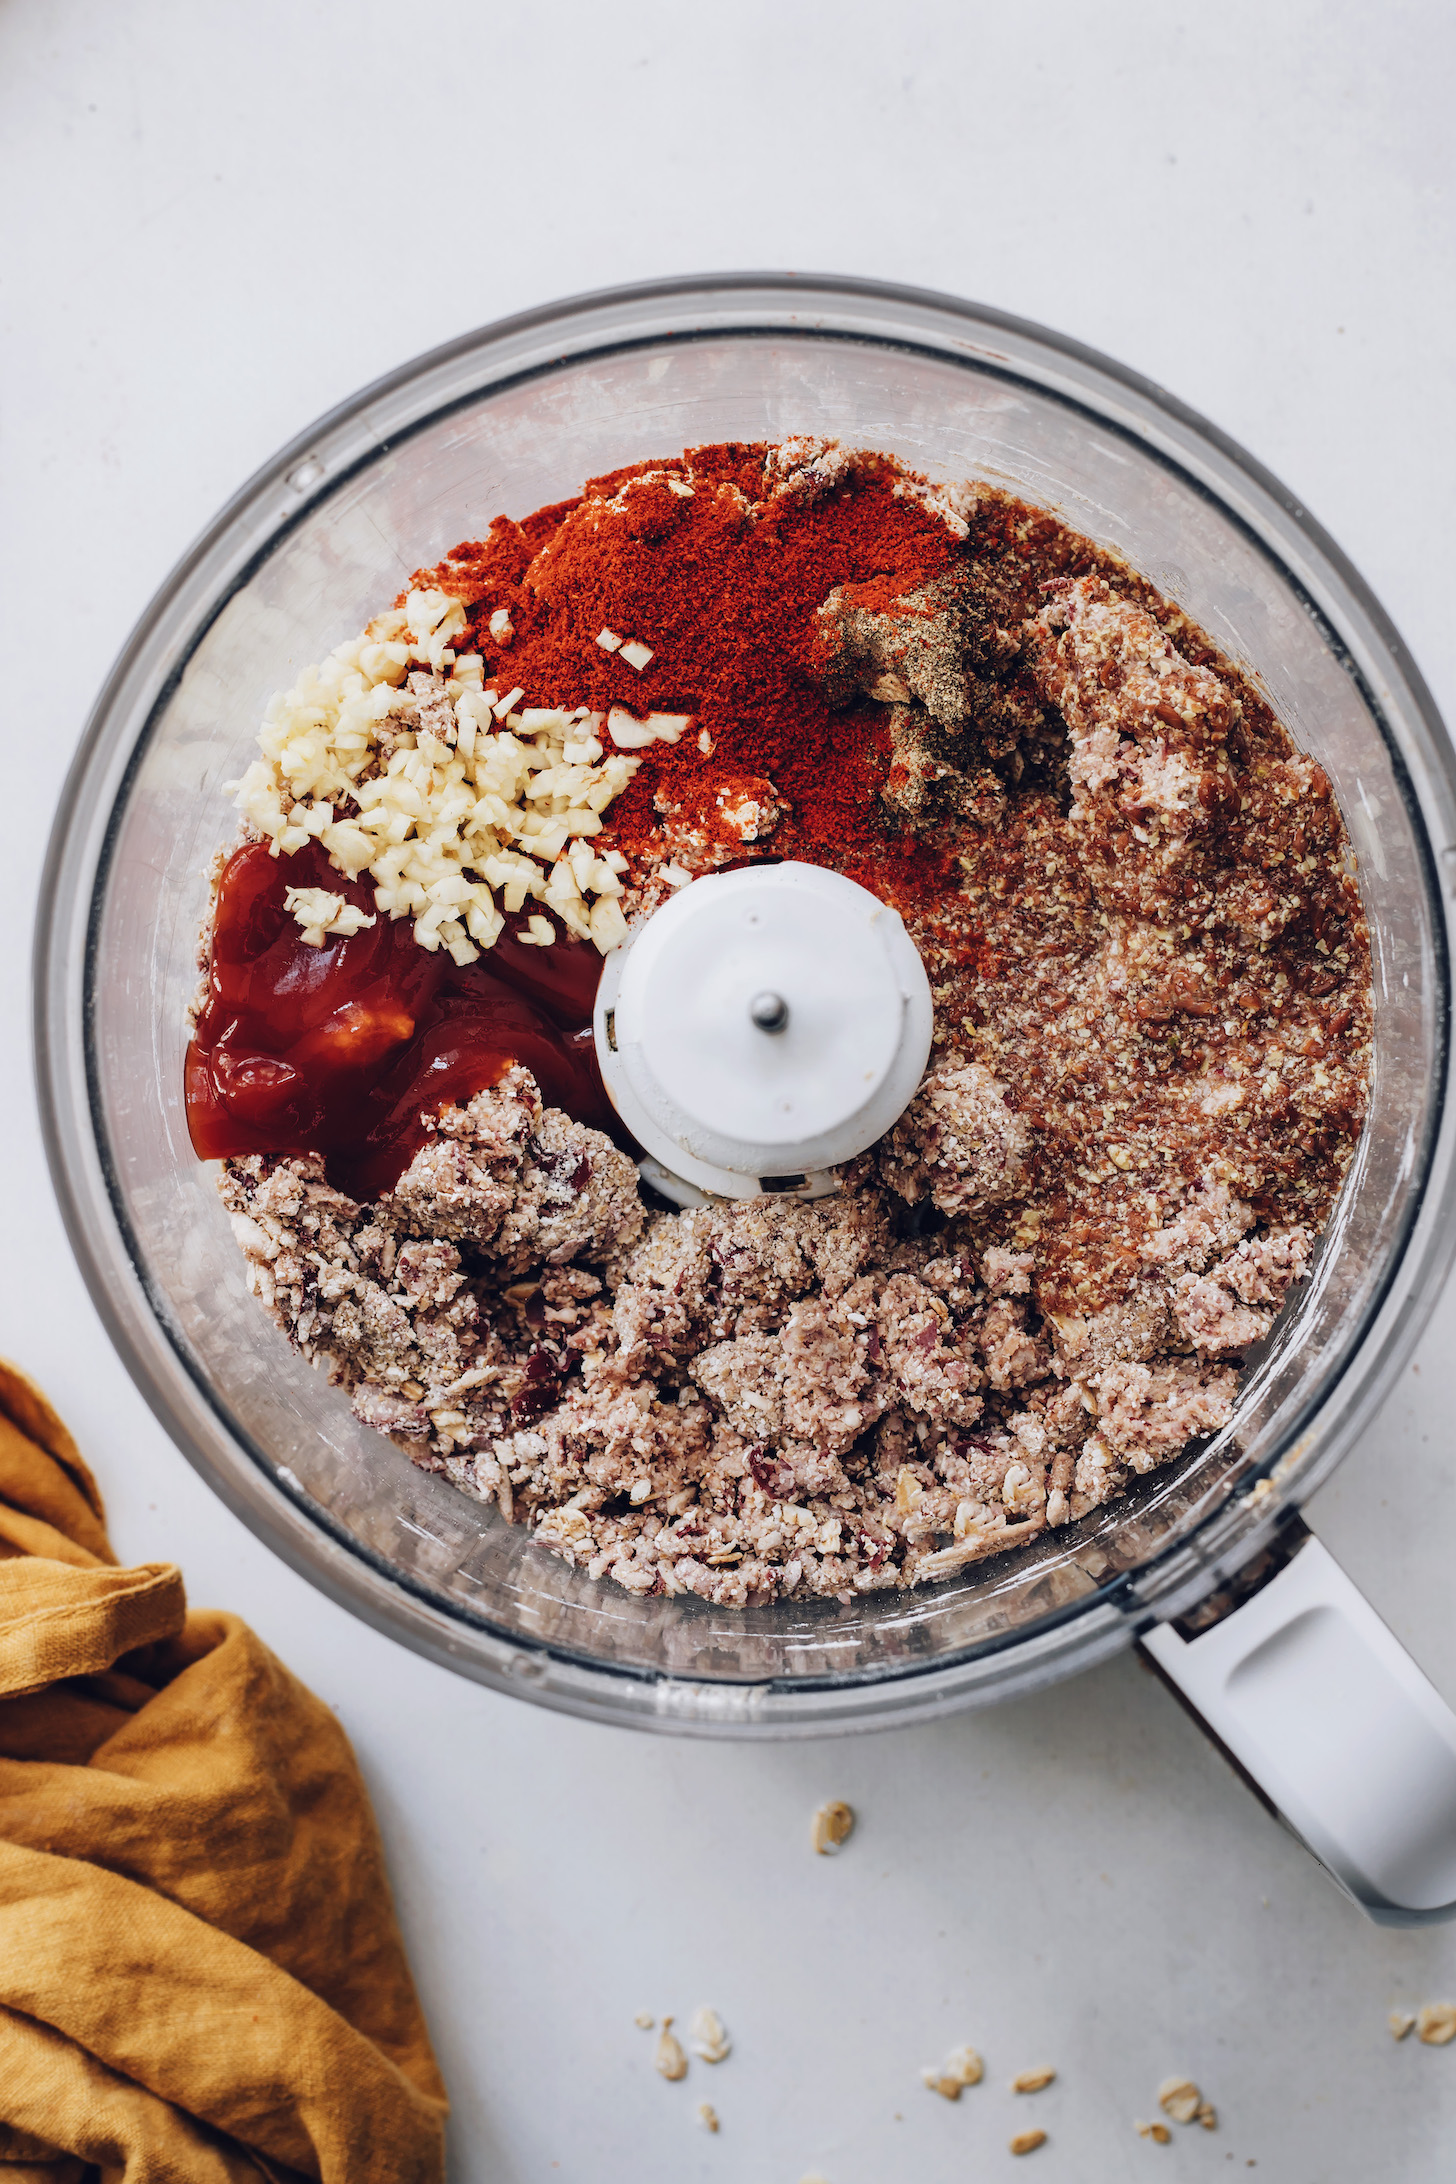 Ketchup, garlic, spices, and flax eggs in a bean, oat, and mushroom mixture